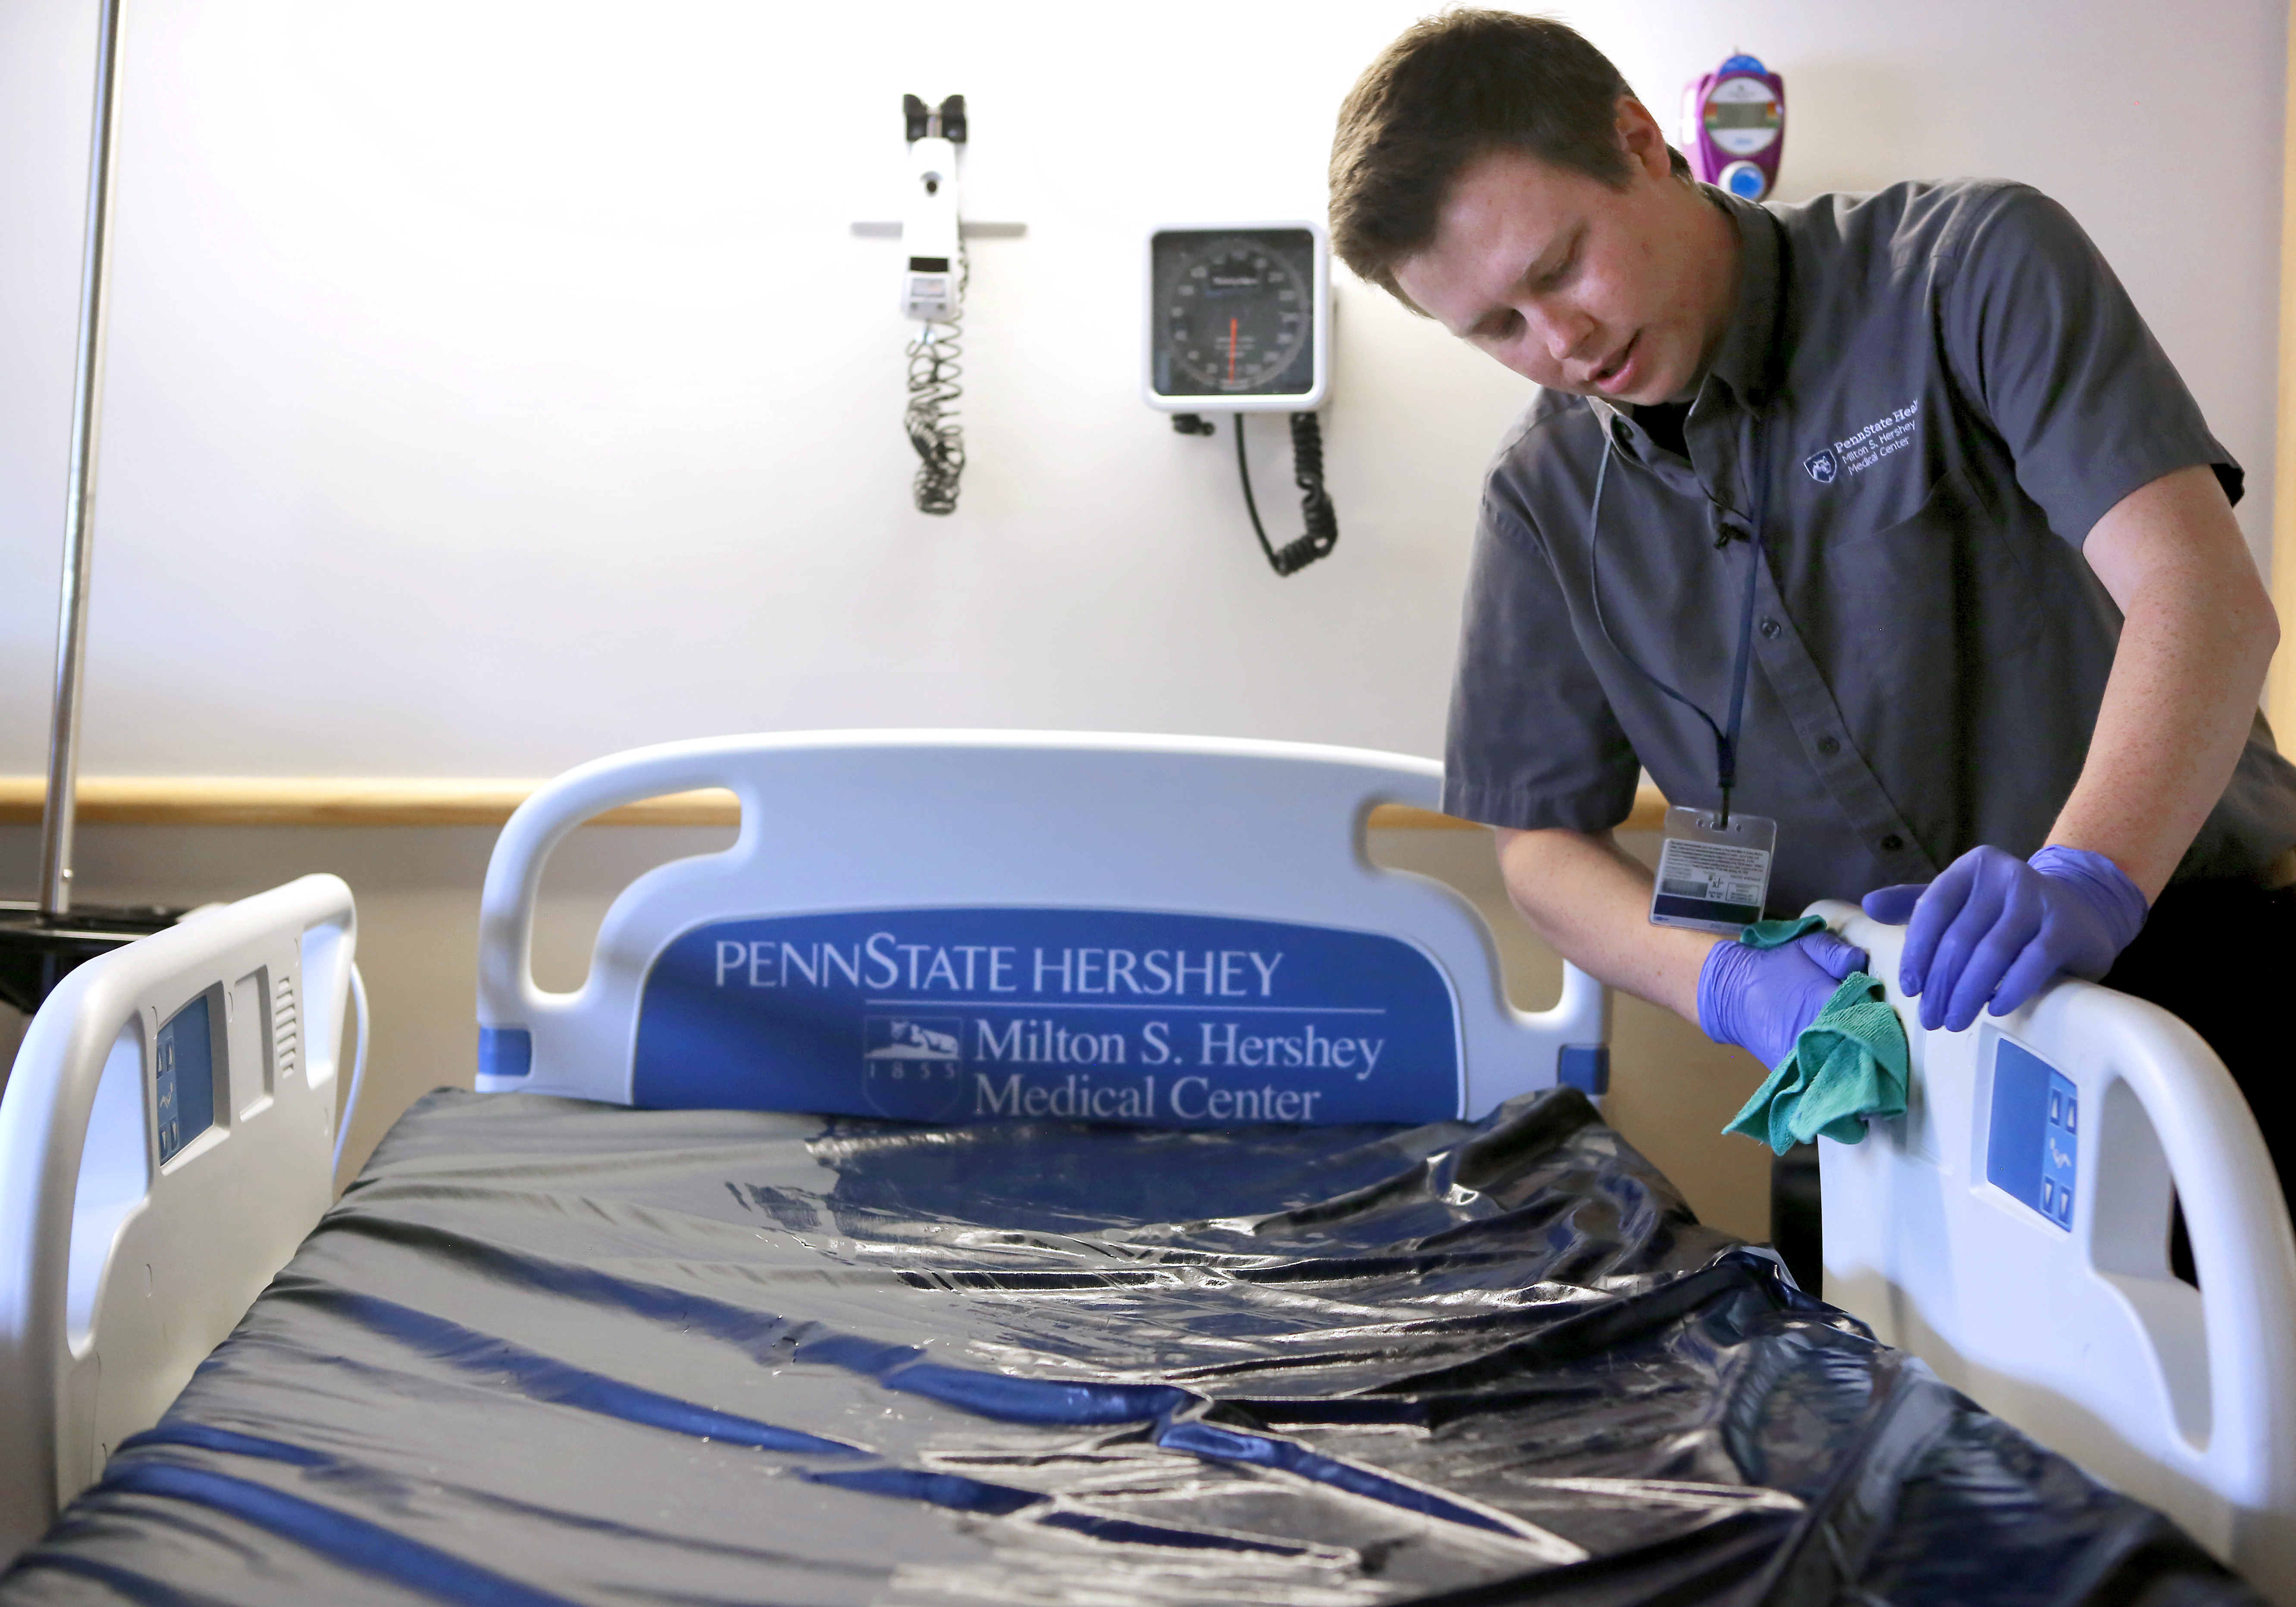 A young man wearing a button-down shirt with a Hershey Medical Center logo leans over a patient bed and wipes the side rail with a cloth. He is wearing purple gloves. The bed has a Hershey Medical Center logo on the headboard.